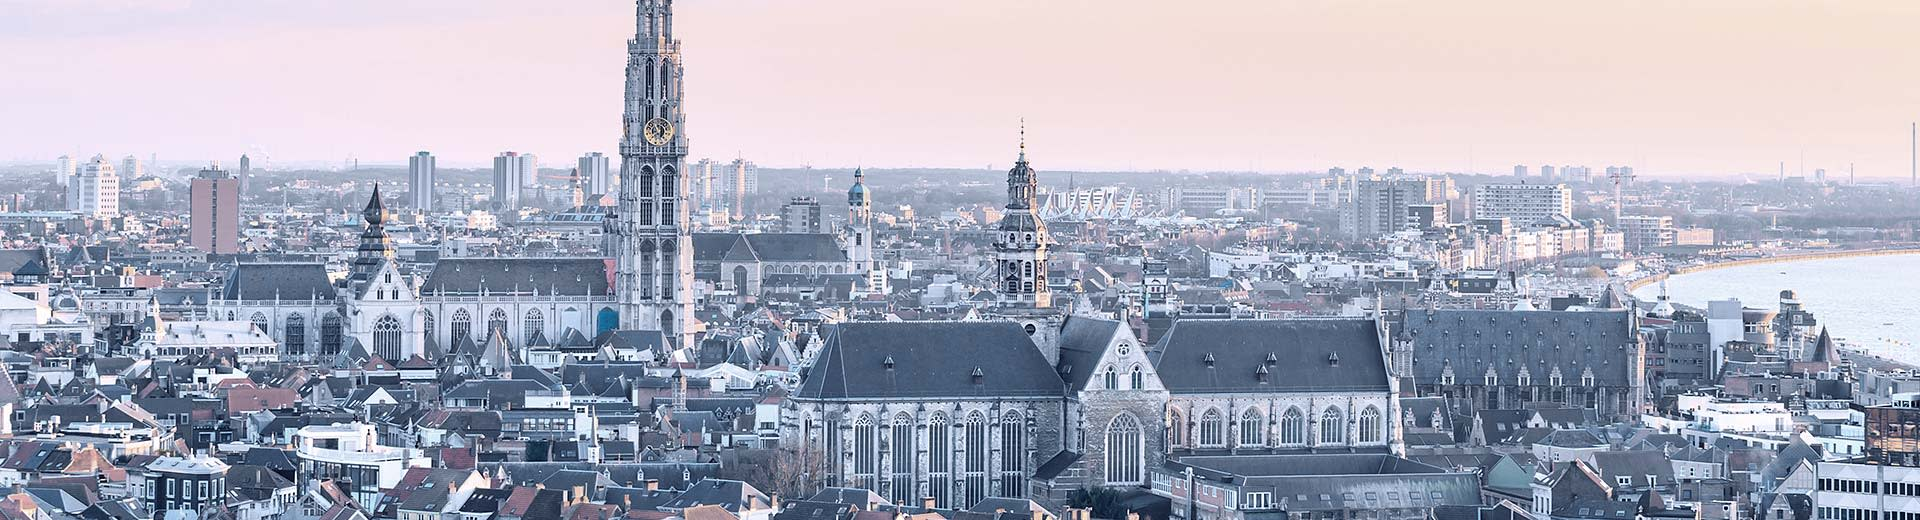 Pink and orange sky with the beautiful old architecture of Antwerp city center in view